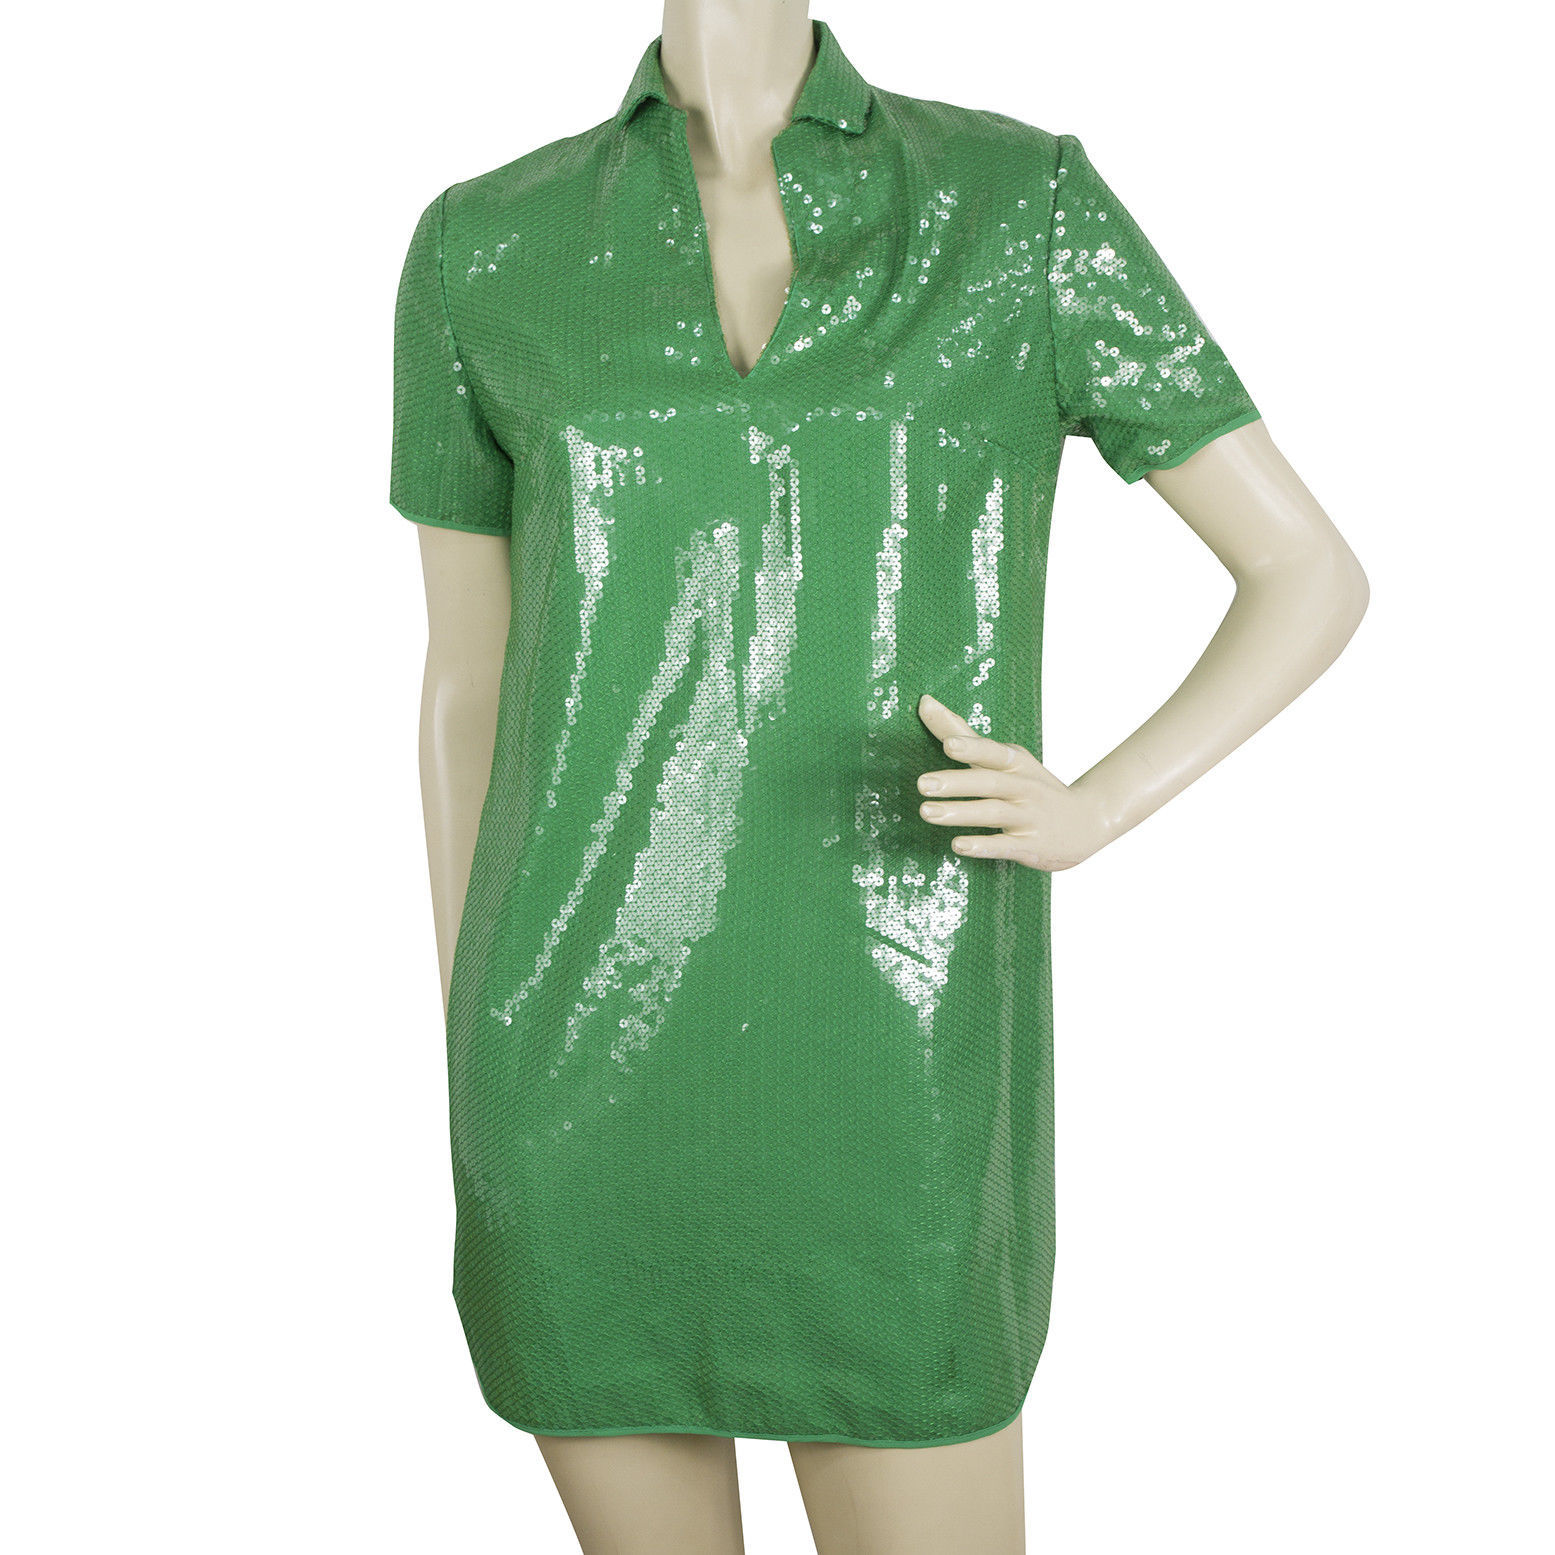 Primary image for Halston Heritage Bright Green Fully Sequined Mini Length Dress size XS